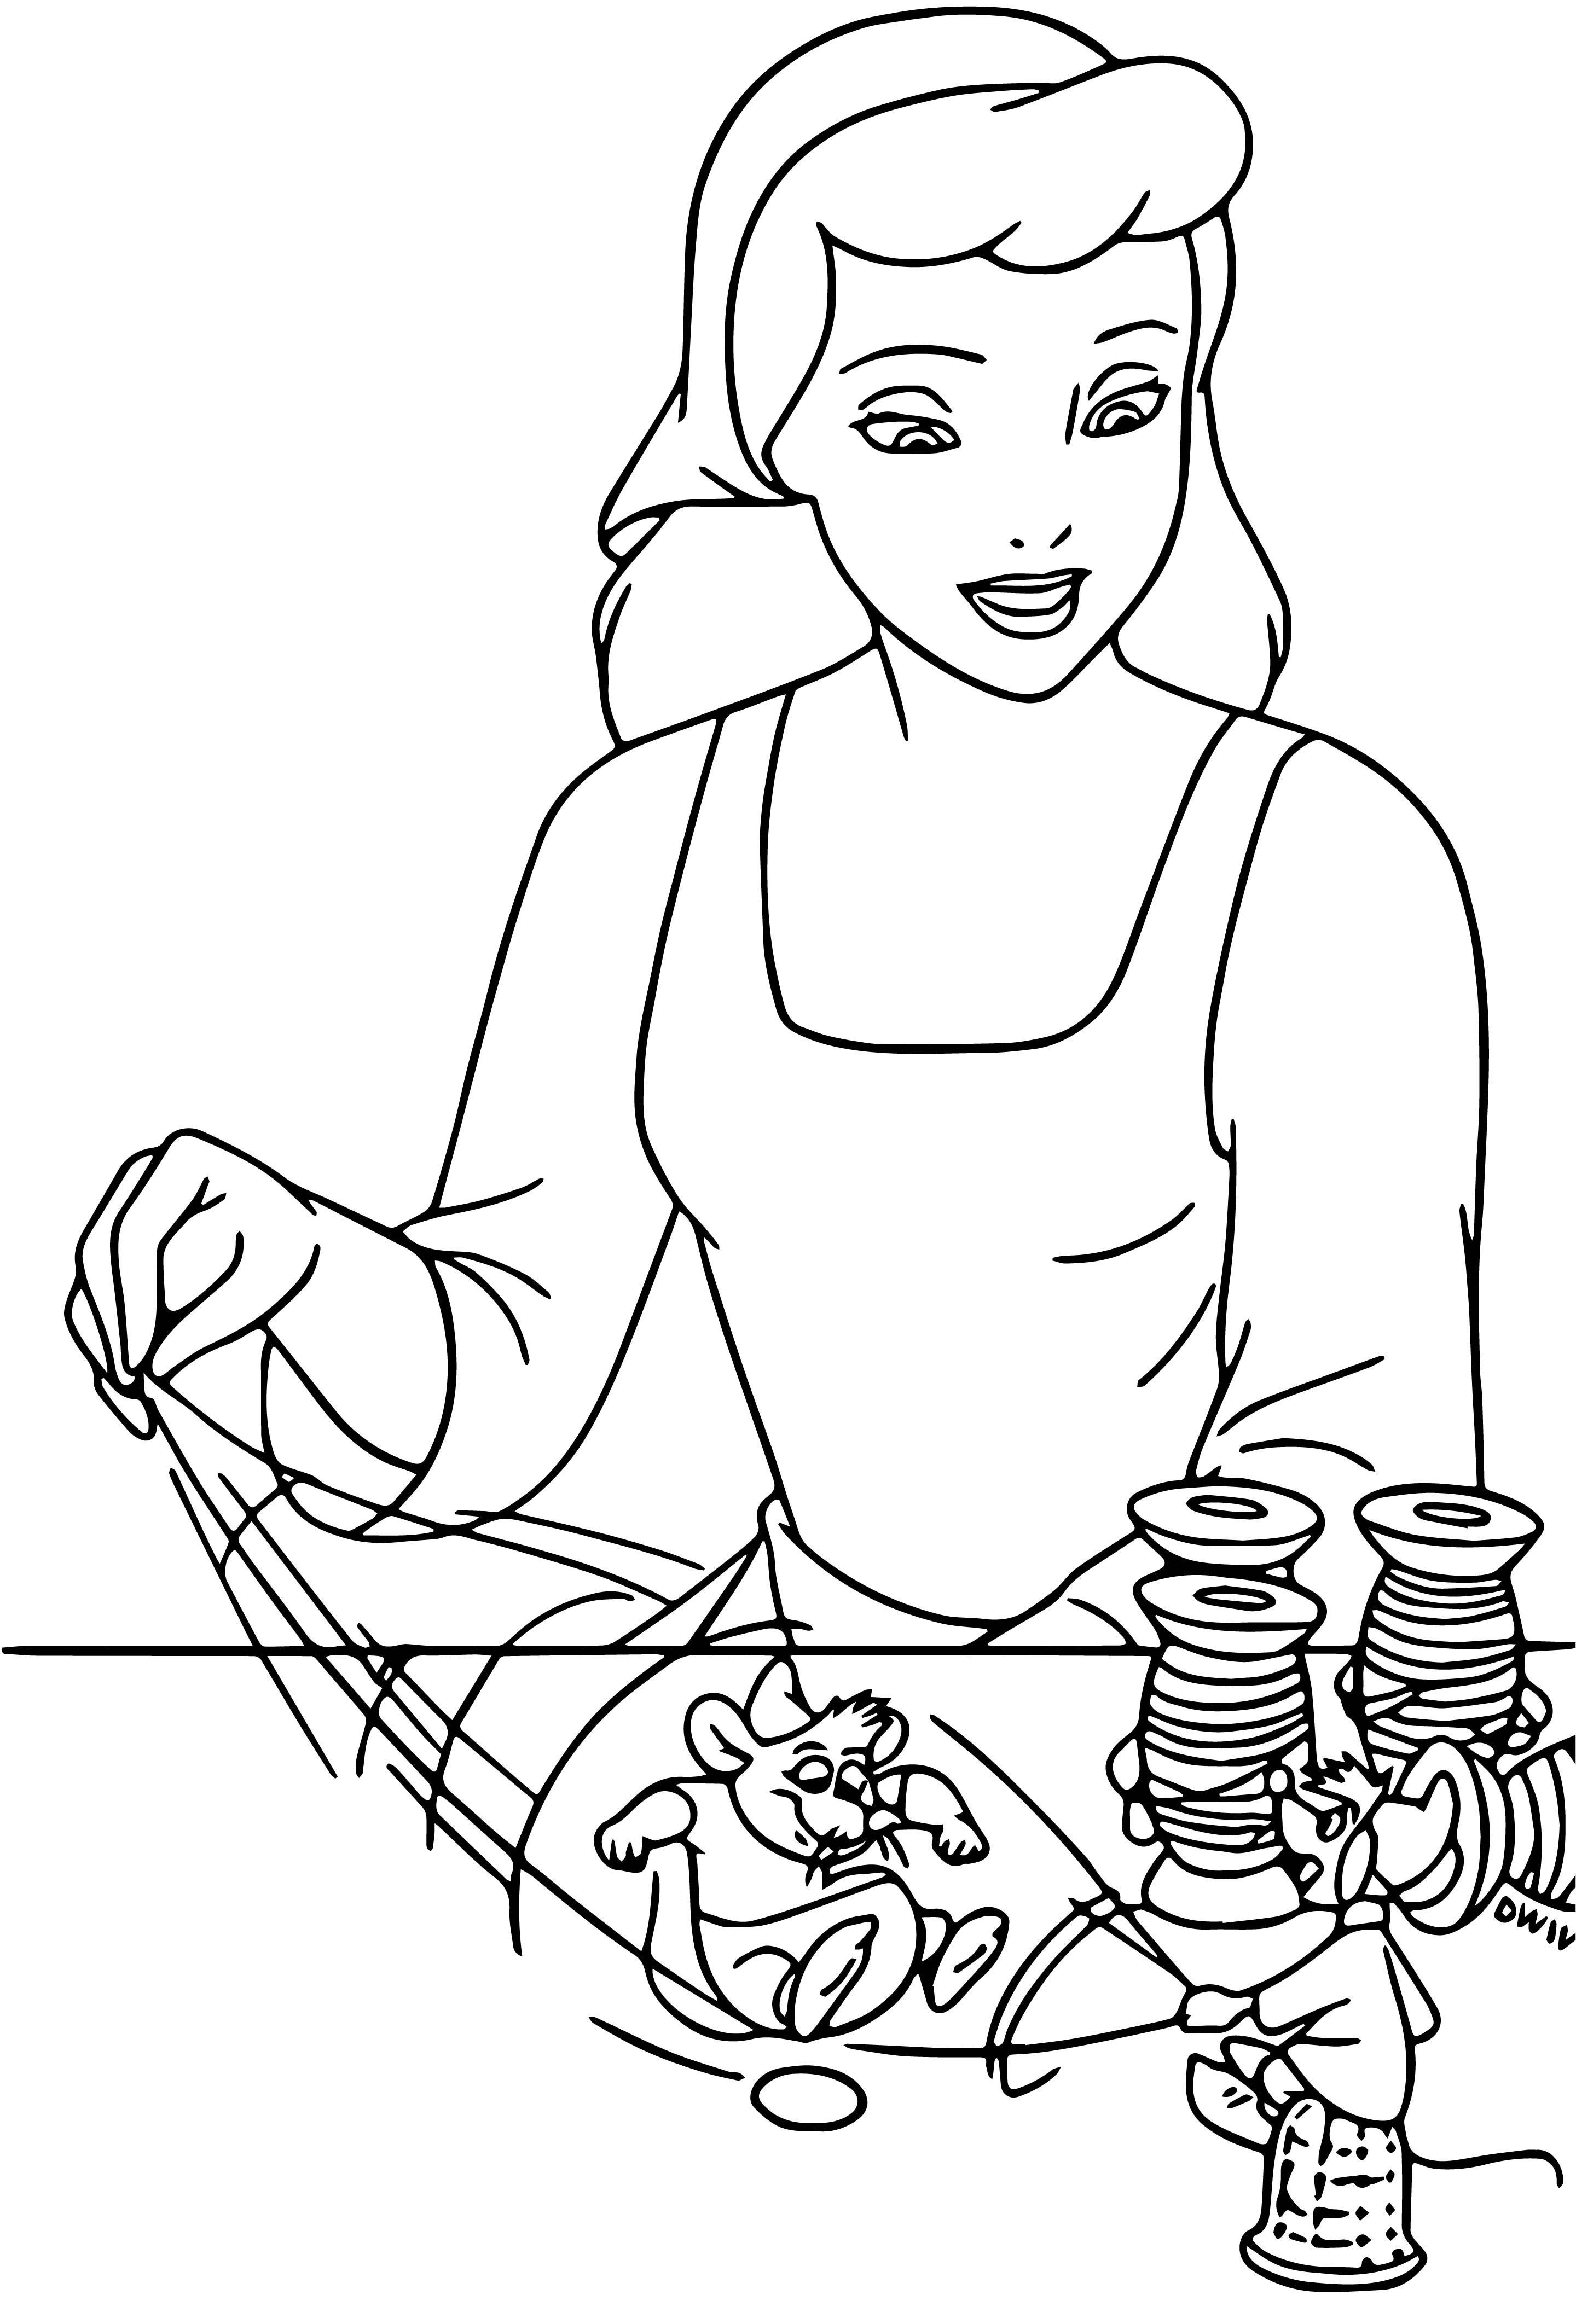 cinderella mice and birds coloring pages 04